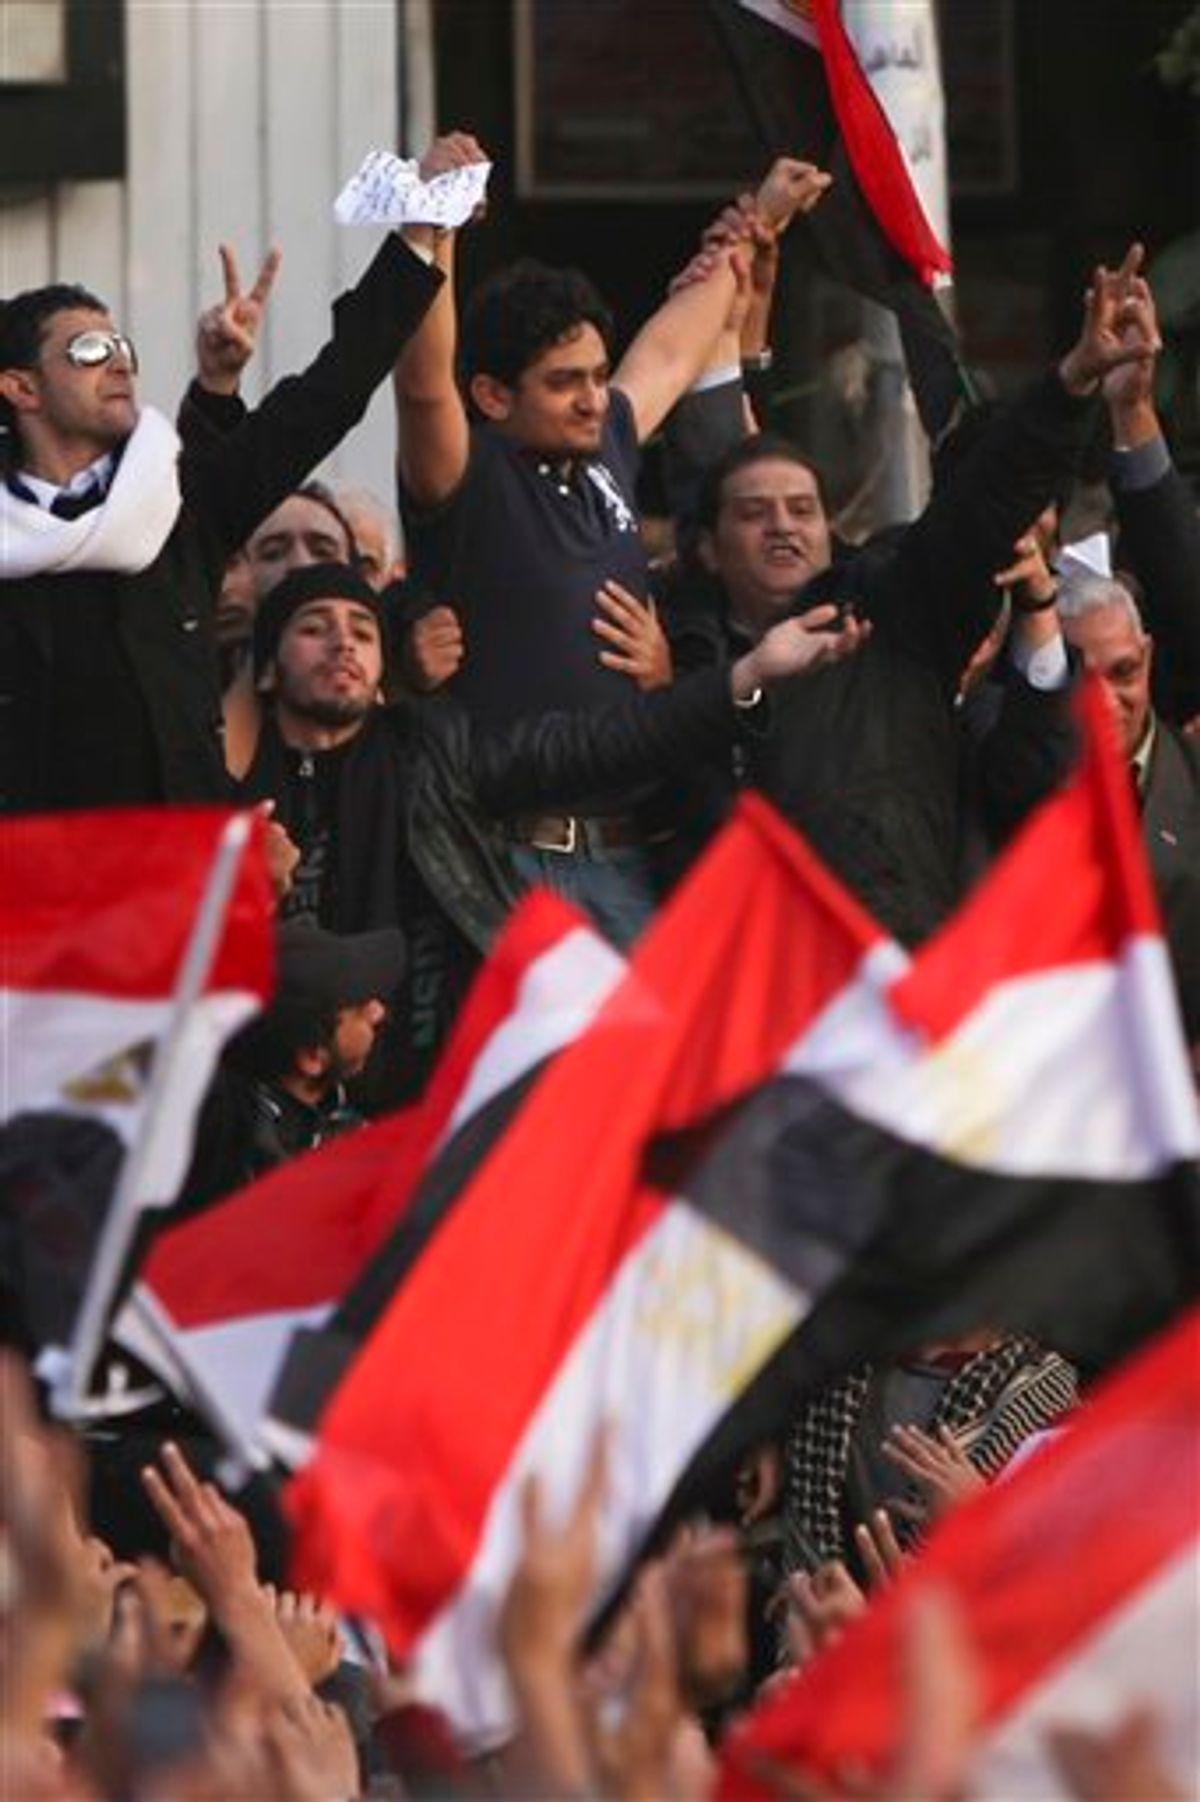 """Egyptian Wael Ghonim, center, a 30-year-old Google Inc. marketing manager who was a key organizer of the online campaign that sparked the first protest on Jan. 25, gestures to the crowd in Tahrir Square, in Cairo, Egypt, Tuesday, Feb. 8, 2011. A young leader of Egypt's anti-government protesters, newly released from detention, joined a massive crowd of hundreds of thousands in Cairo's Tahrir Square for the first time Tuesday, greeted by cheers, whistling and thunderous applause when he declared: """"We will not abandon our demand and that is the departure of the regime."""" (AP Photo/Tara Todras-Whitehill) (AP)"""